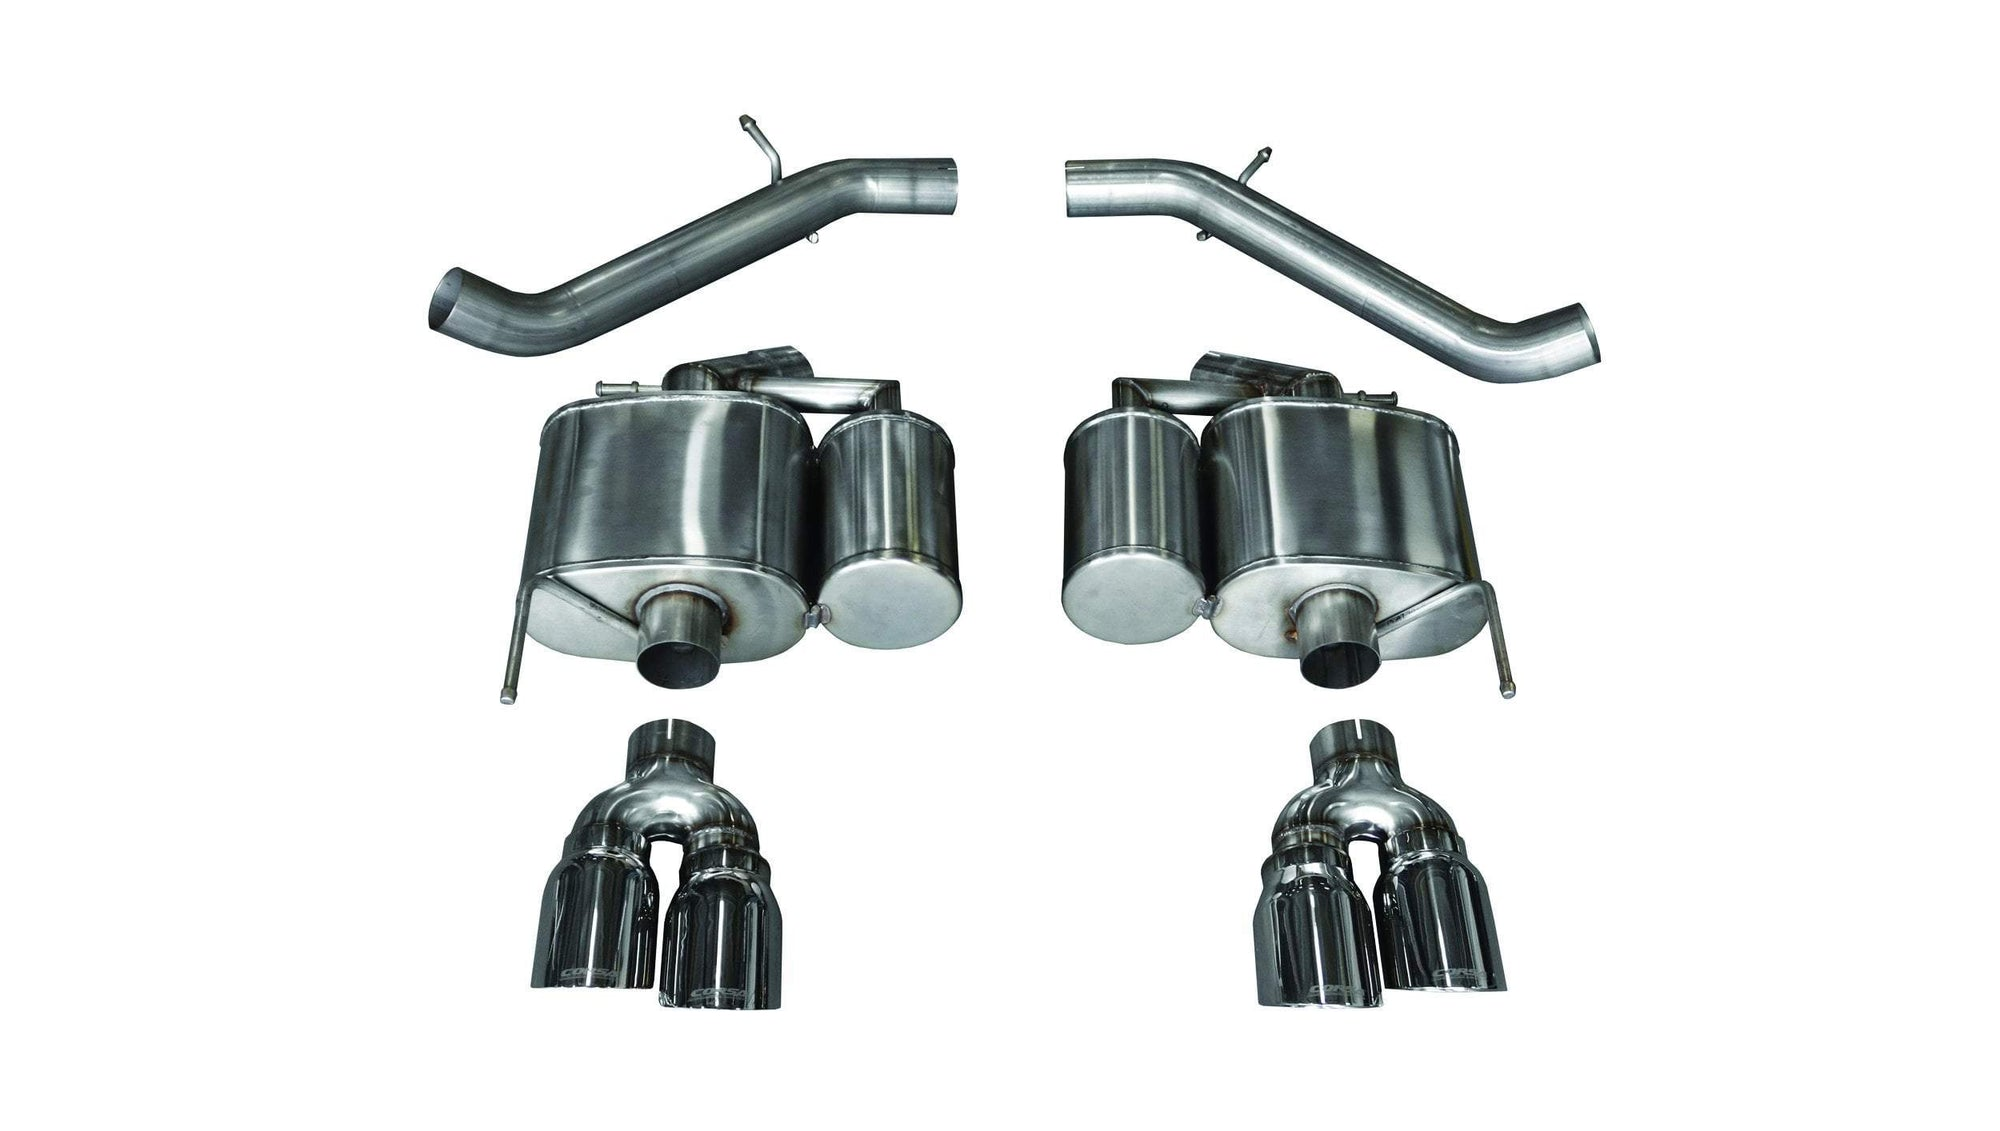 "CORSA PERFORMANCE Axle-Back Exhaust Polished / Sport / Dual Rear - Twin 4.0in 2016-2019 Cadillac ATS-V 3.0"" Dual Rear Exit Axle-Back Exhaust System with Twin 4.0"" Tips (14478) Sport Sound Level"